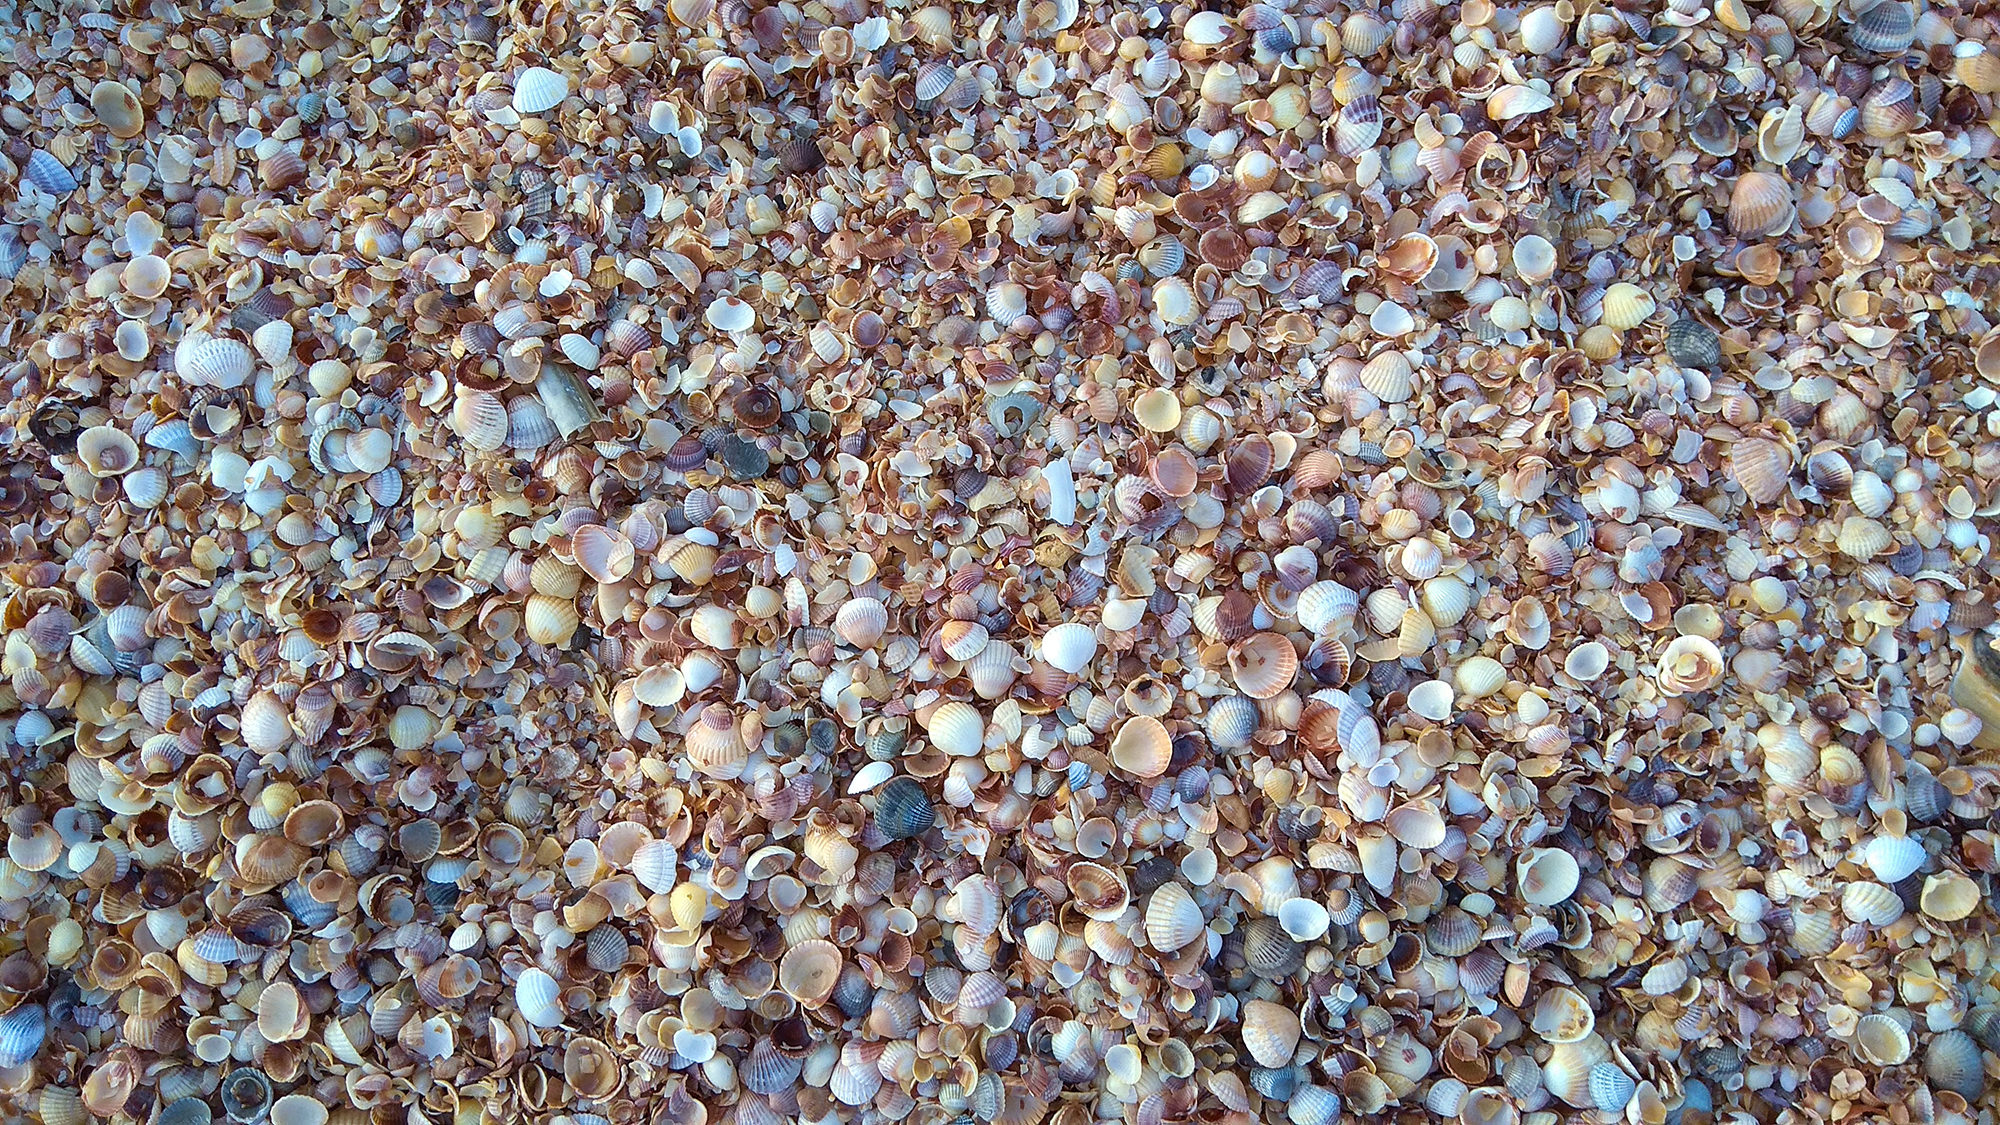 A mixture of small shells covering the whole image